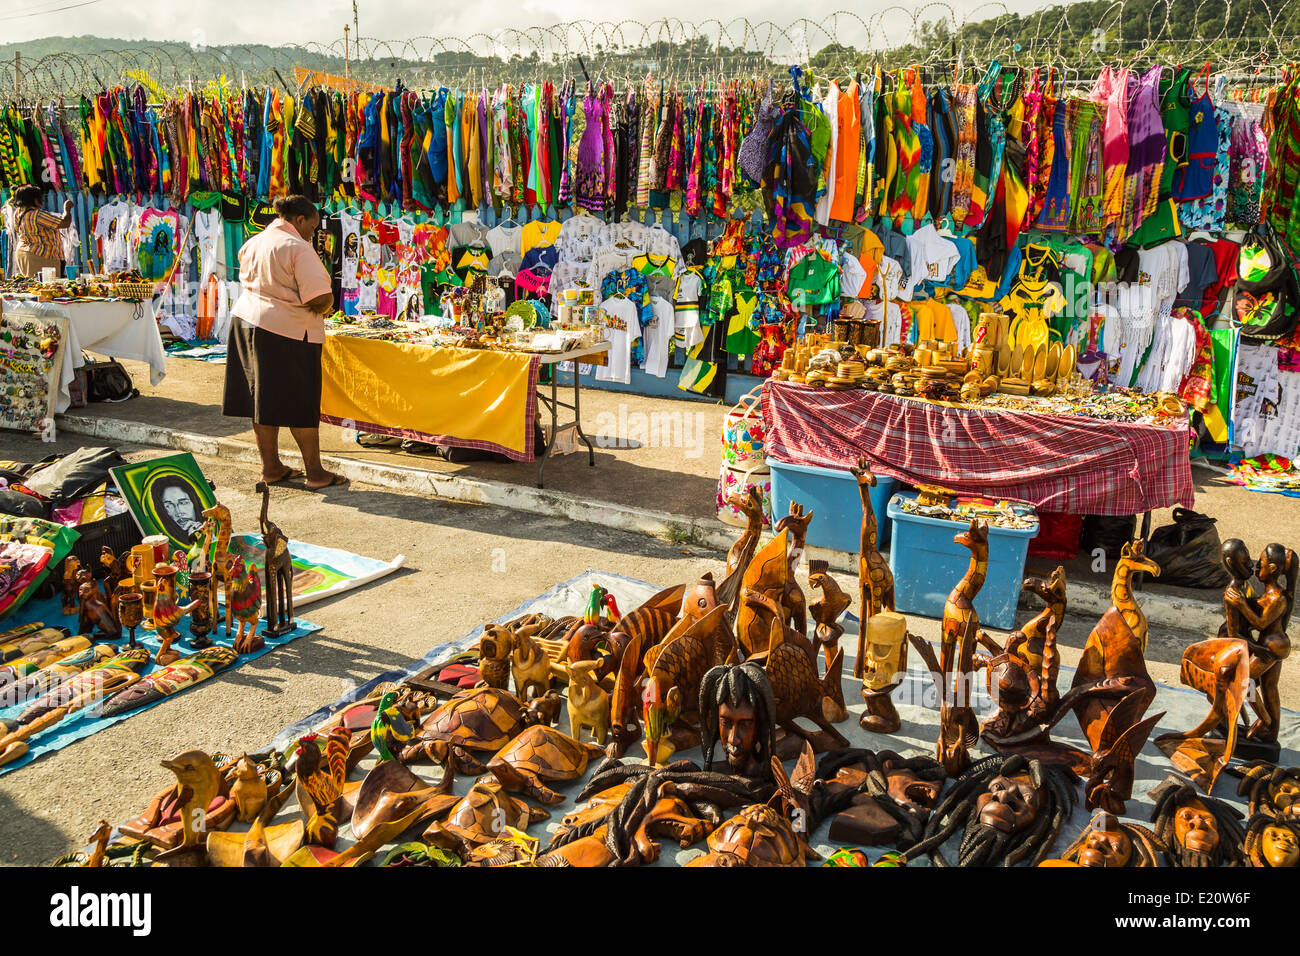 Local souvenirs for sale at the port of Ocho Rios, Jamaica, Caribbean. - Stock Image